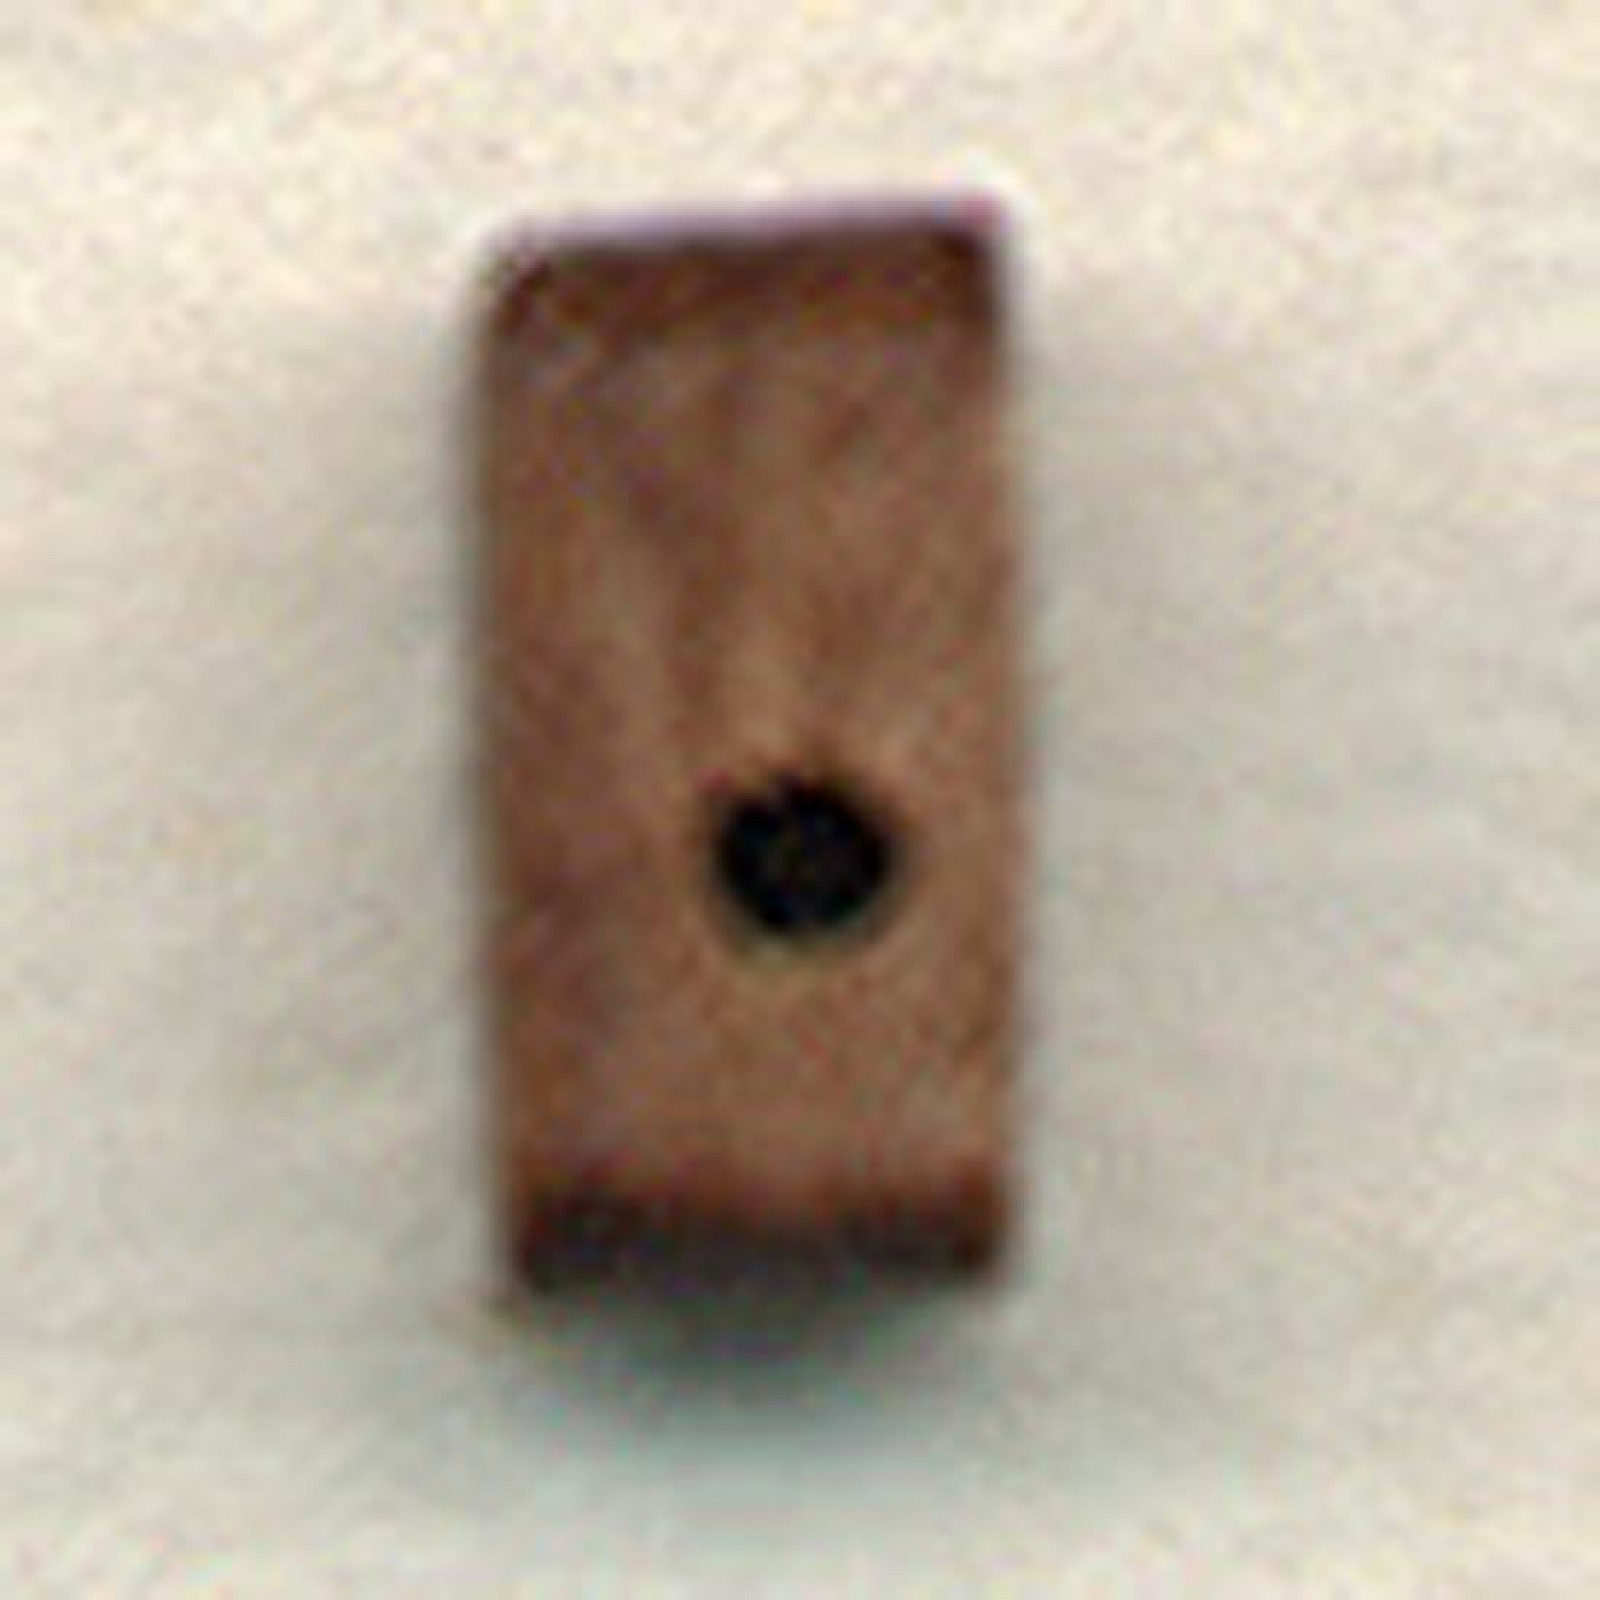 BLOCK,SNGL,WAL,1/8  (3MM) - 150/PACK